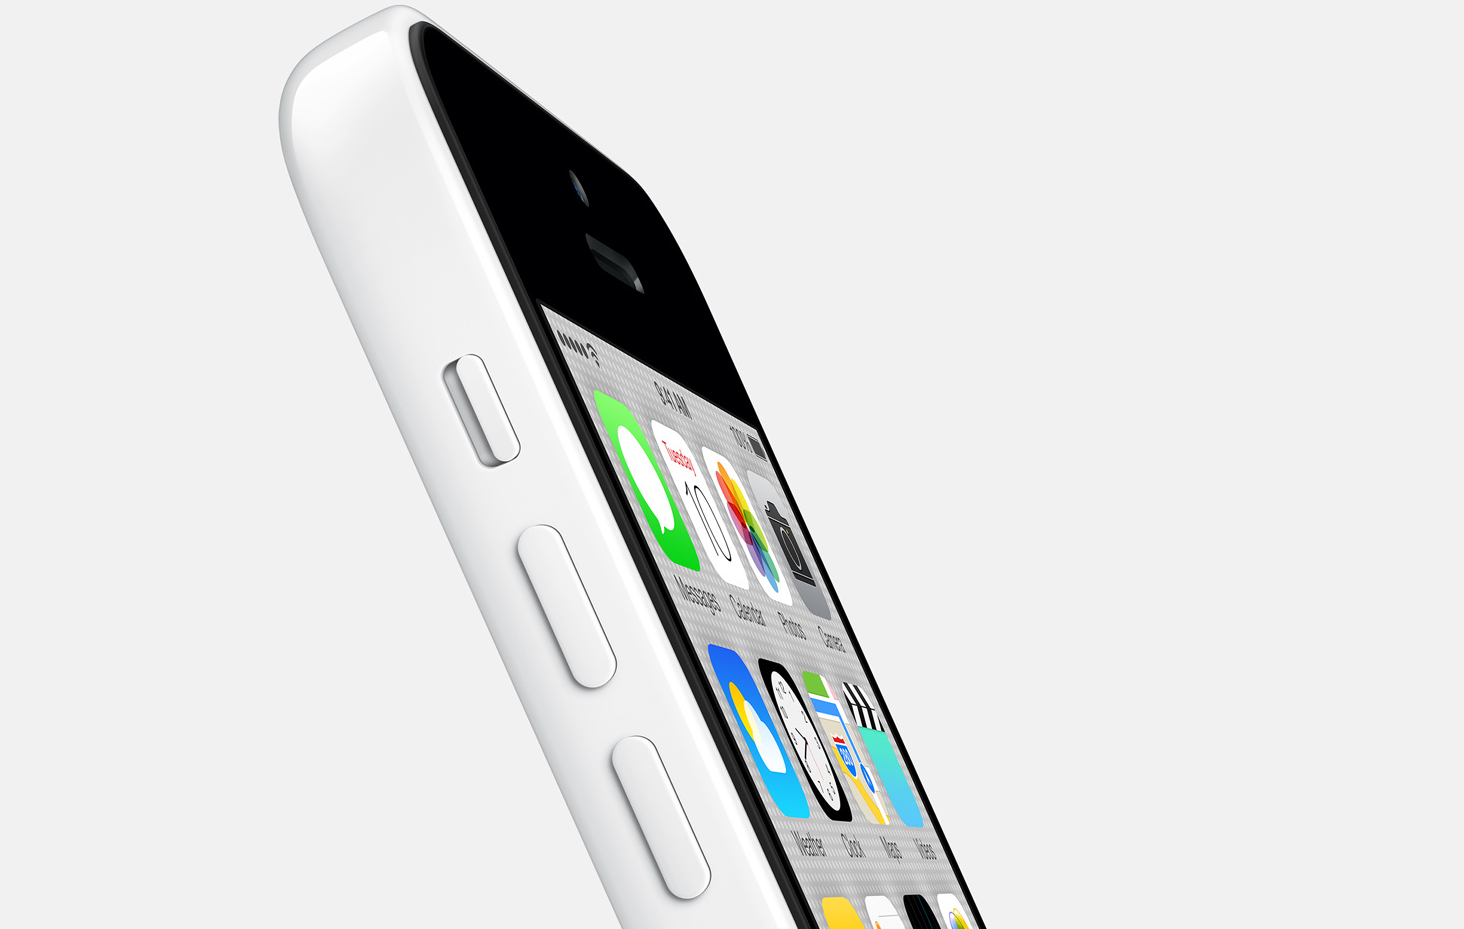 white iPhone 5c white background